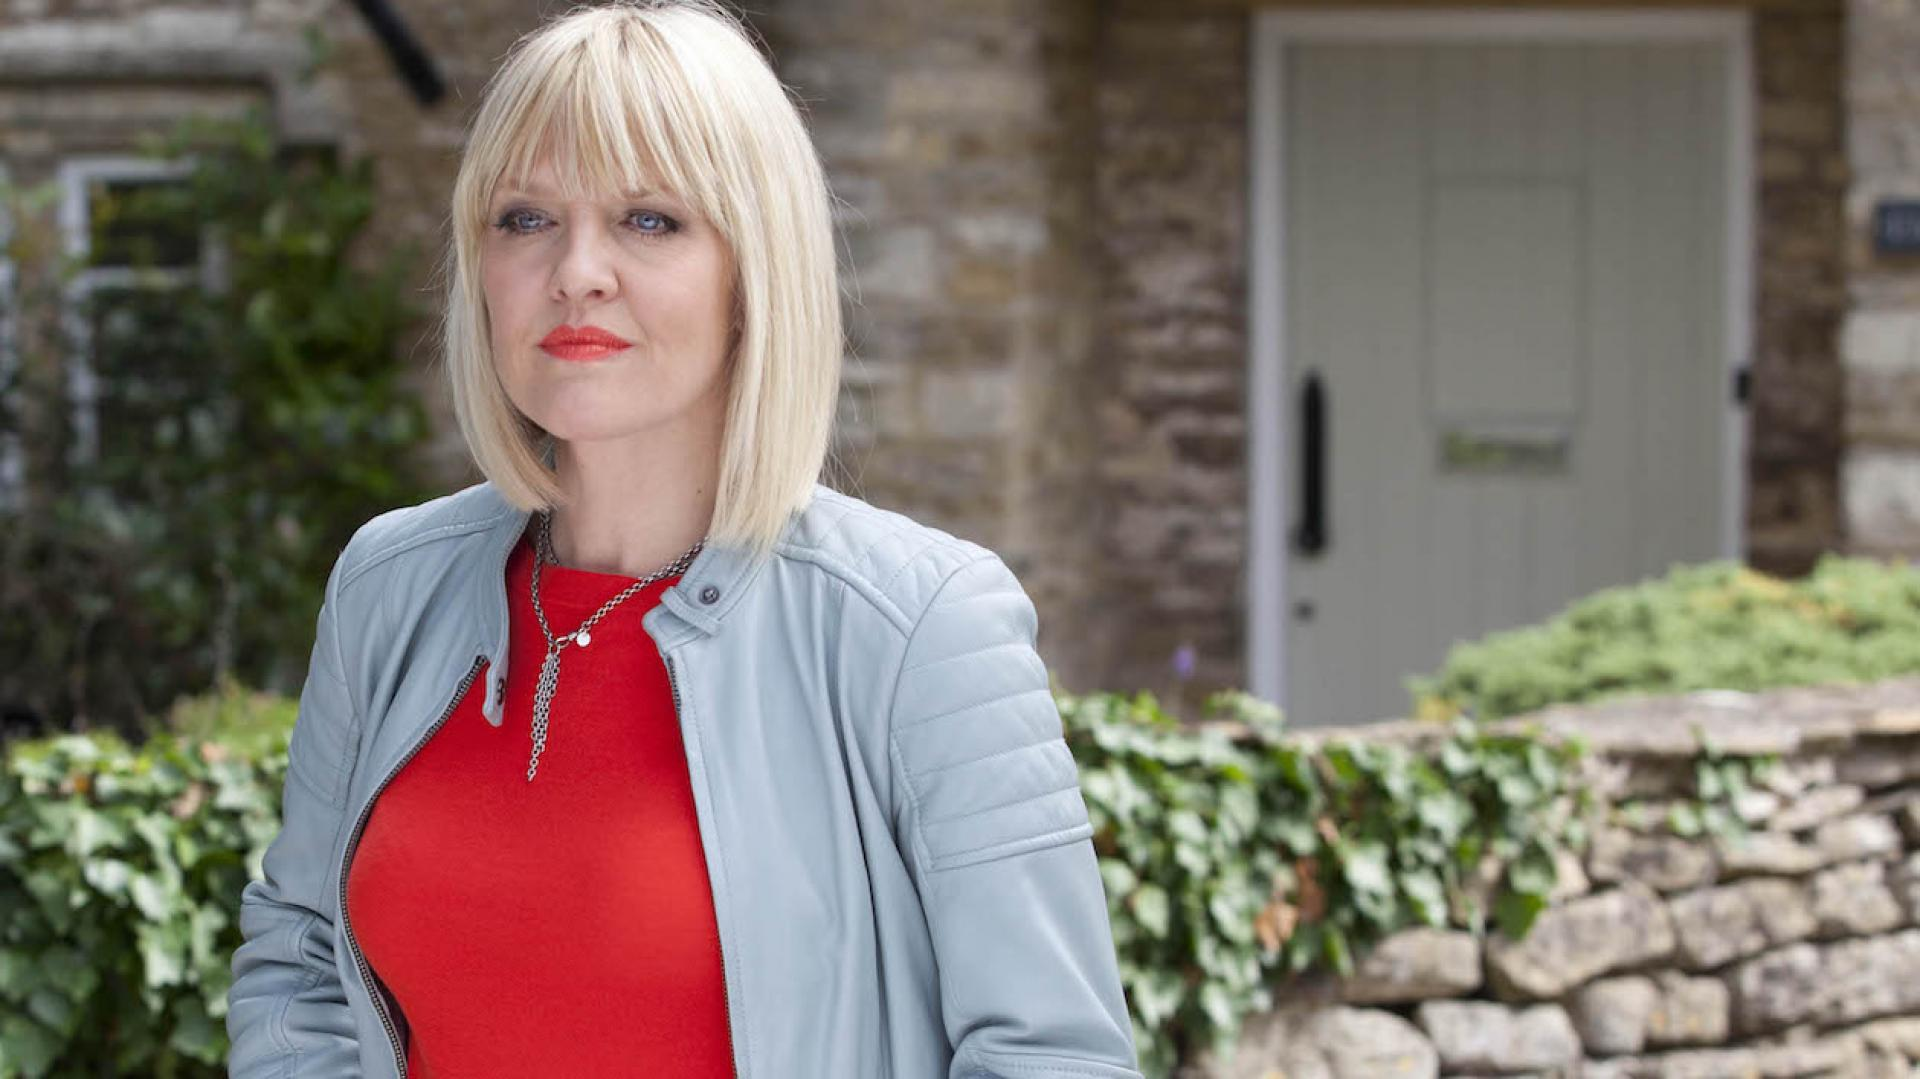 agatha raisin  Agatha Raisin' Season 2 Begins on Acorn in November | Telly Visions